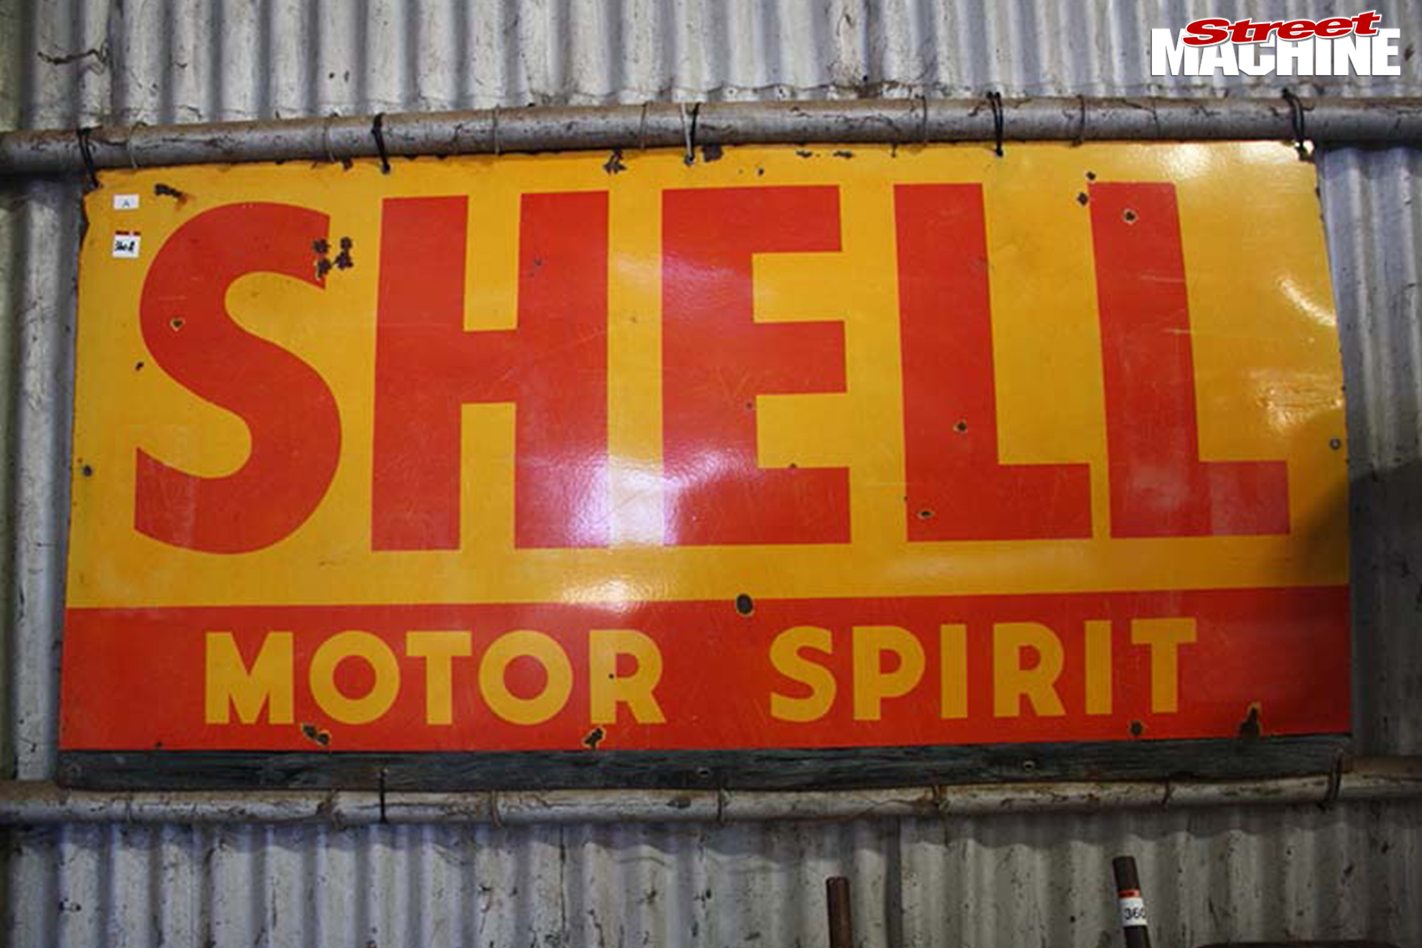 360a -holden -auction -shell